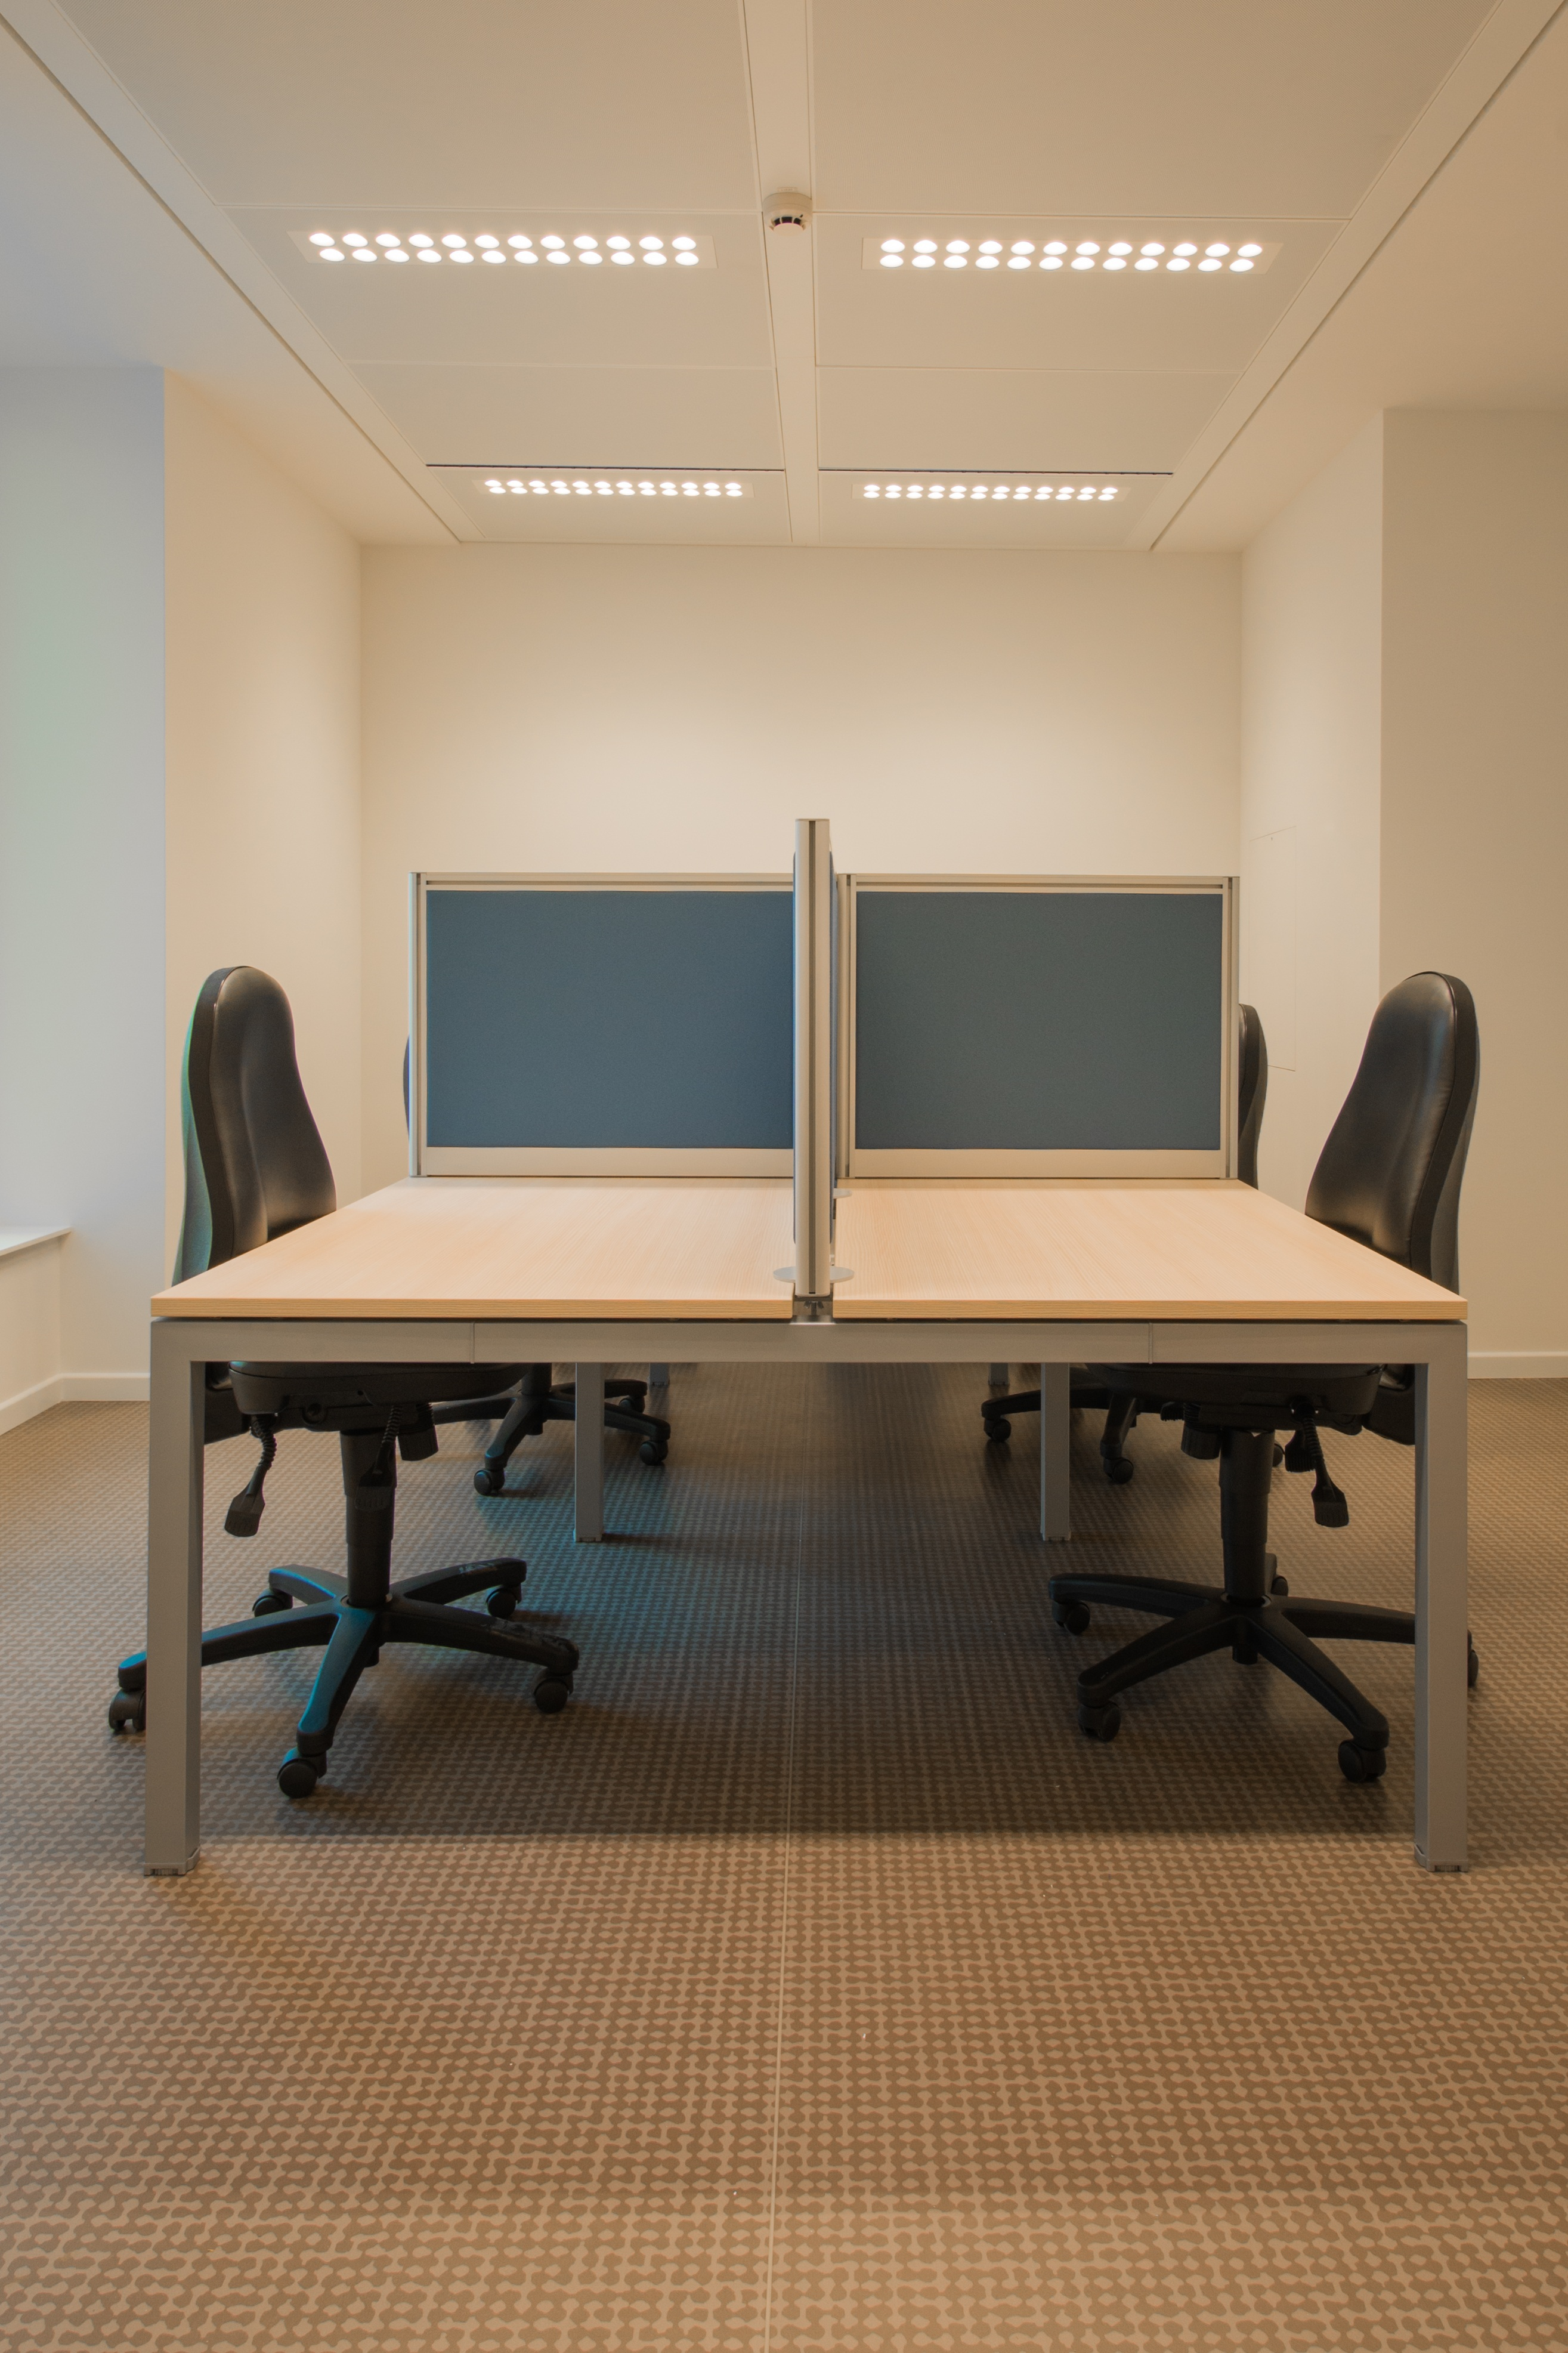 White Cubicle With Rolling Chairs 183 Free Stock Photo